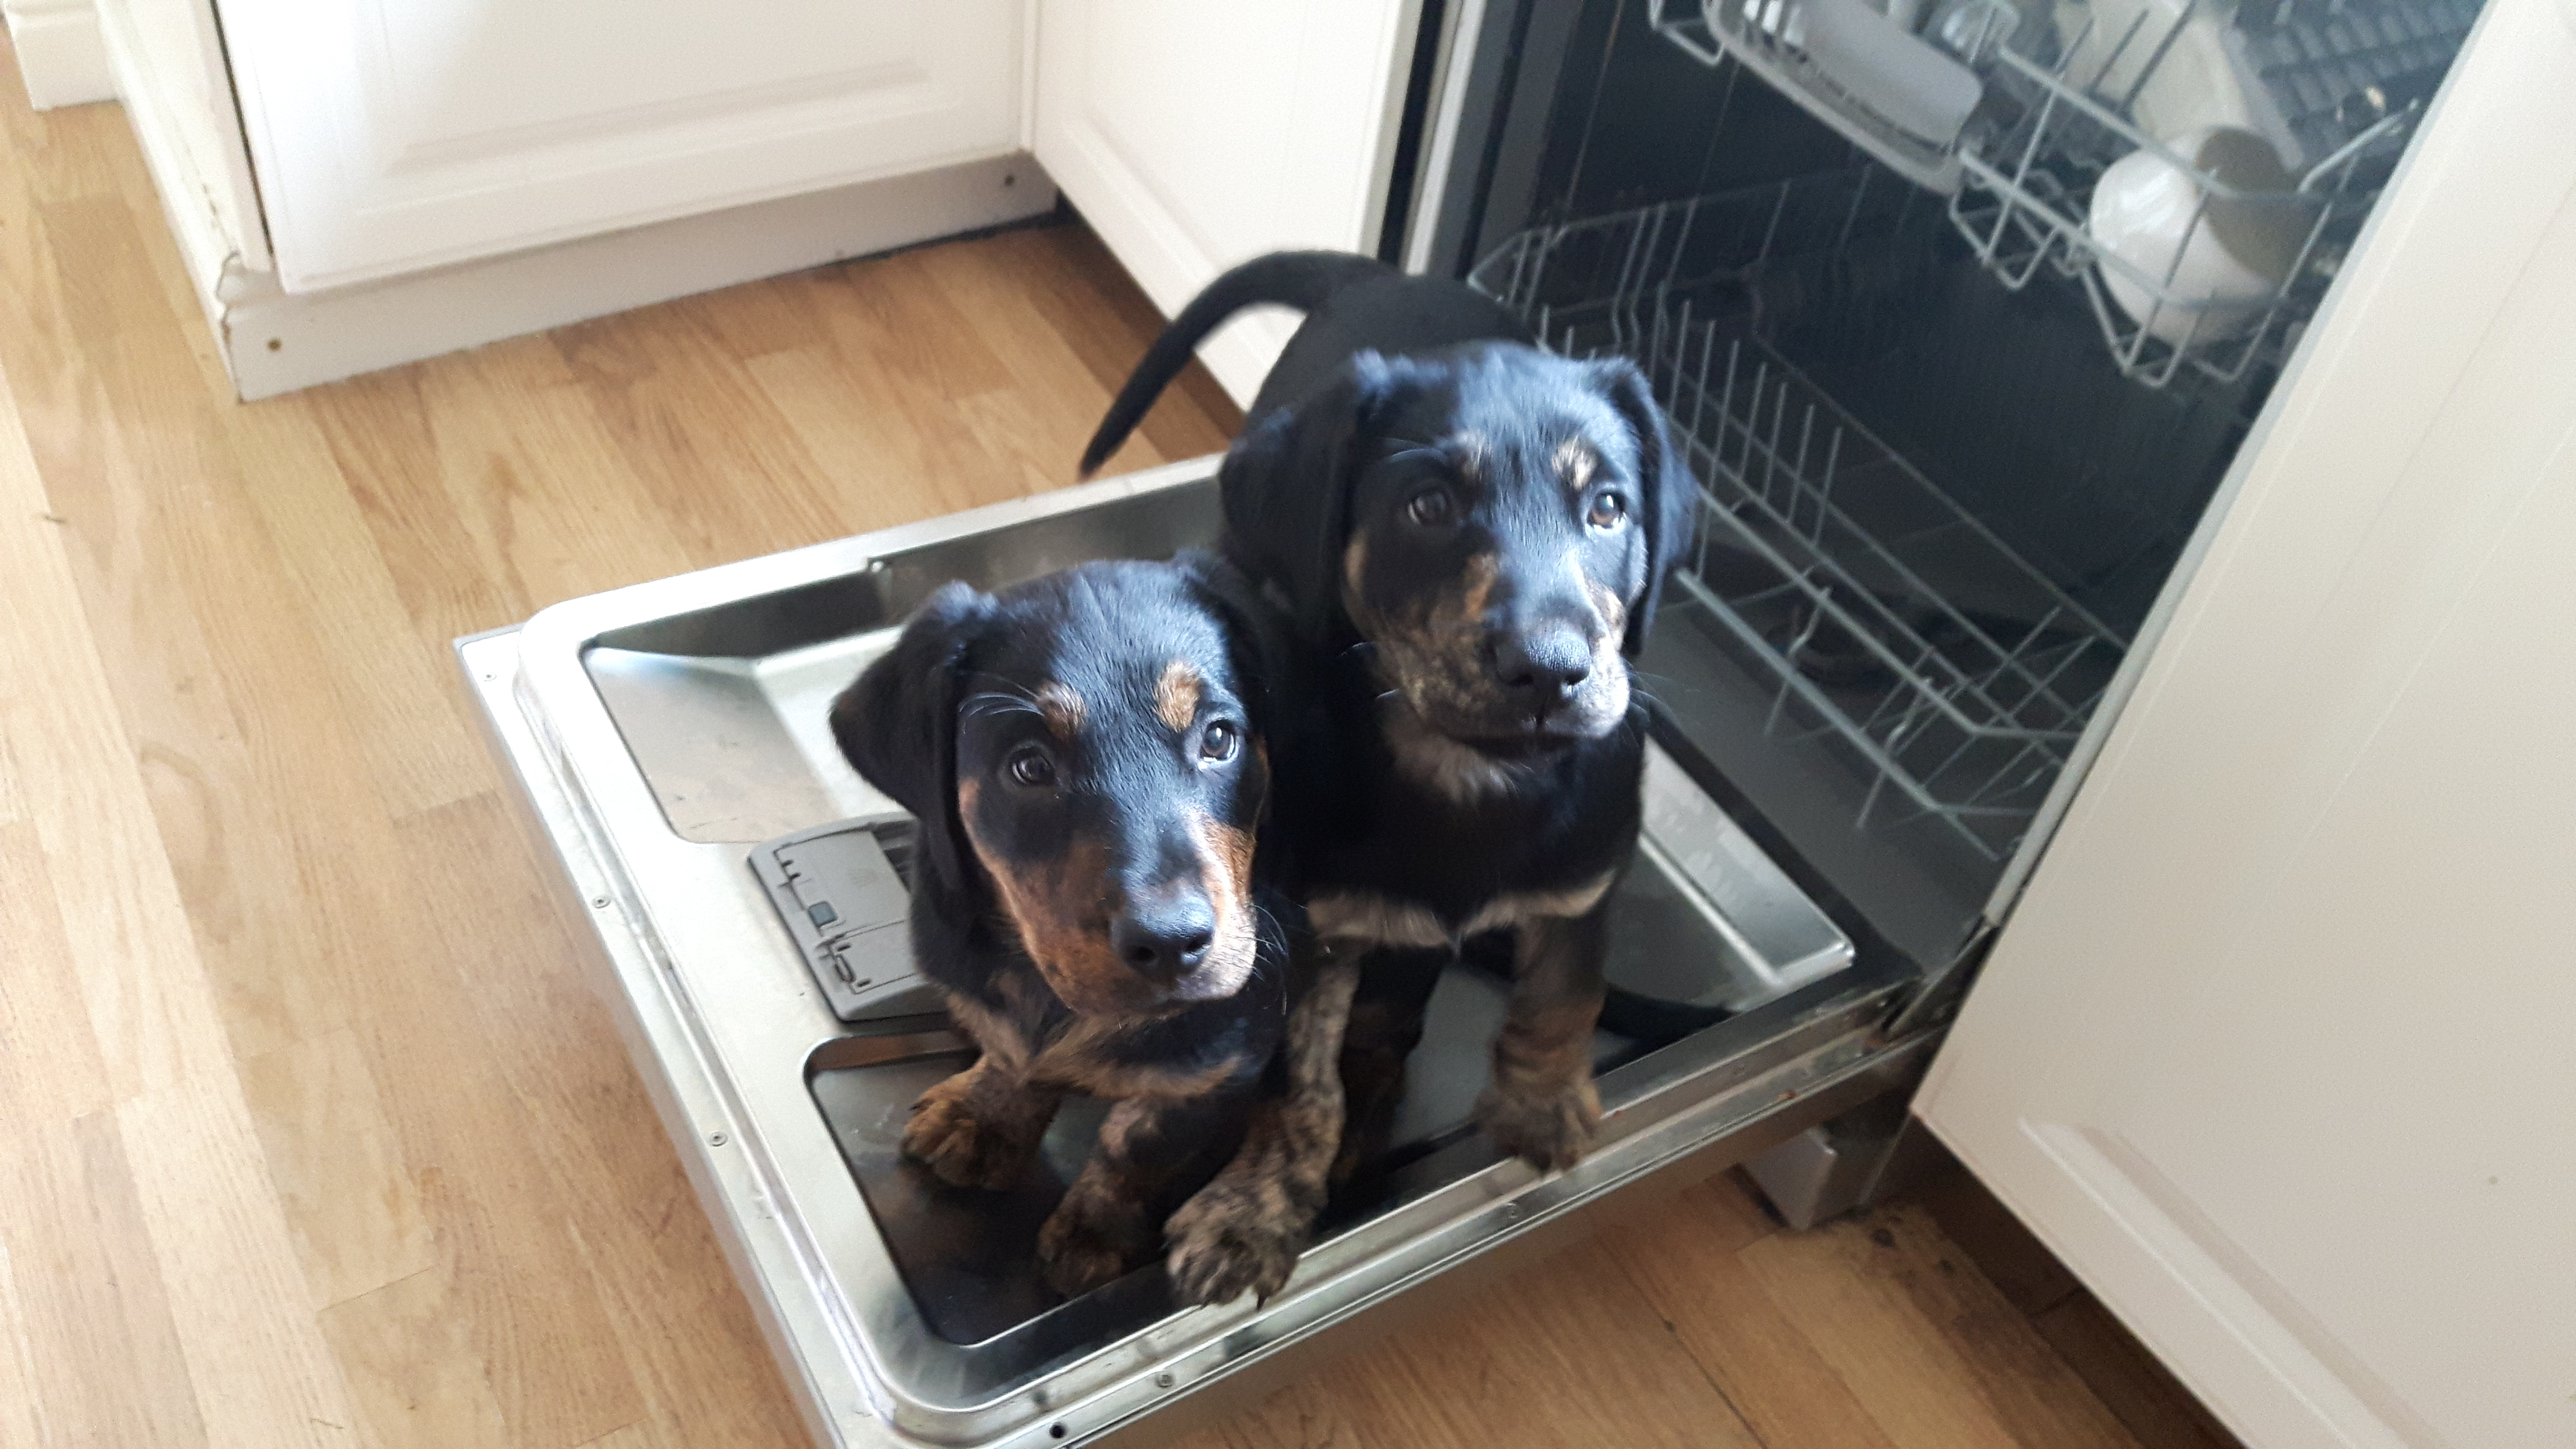 Helping with the dishes!